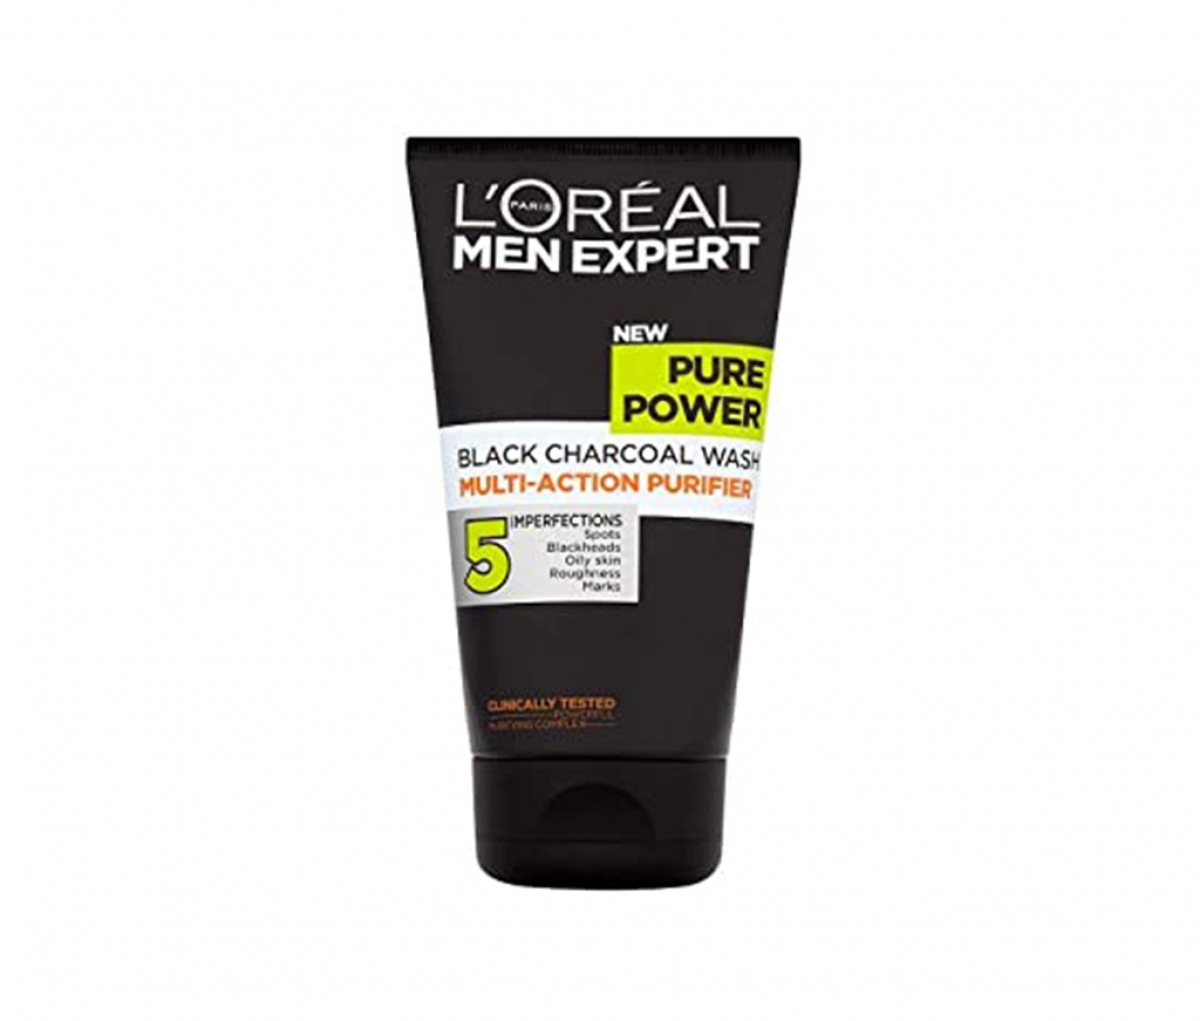 L'Oreal  Men Expert Pure Power Charcoal Face W